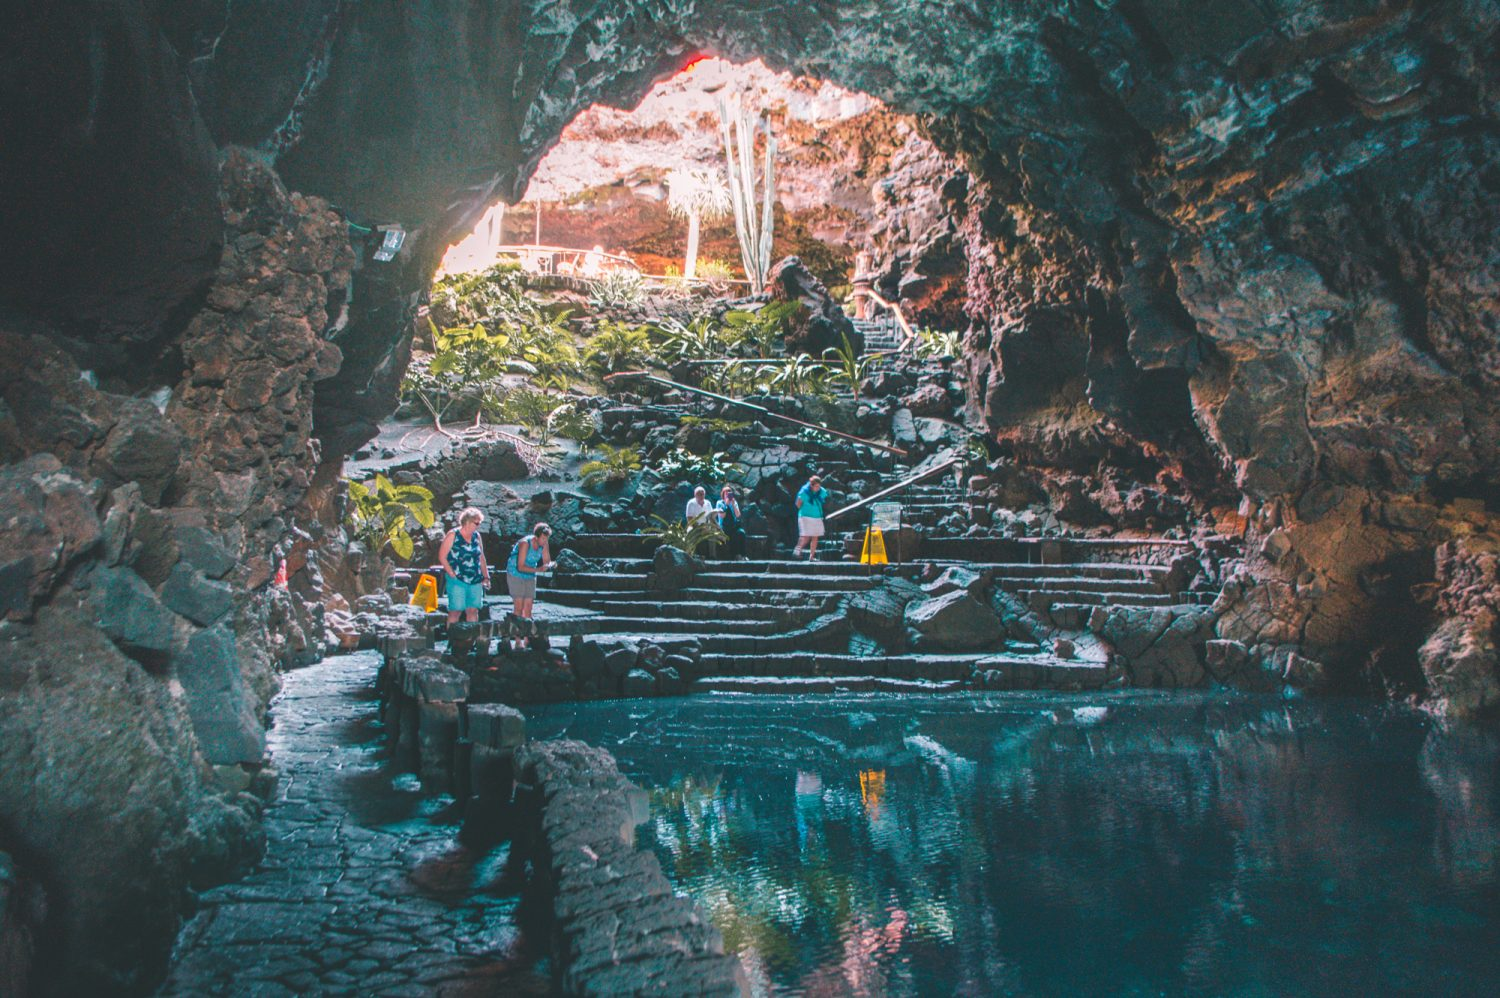 Incredible things to do in Lanzarote, one of the most beautiful Canary Islands in Spain. #Lanzarote #Spain #CanaryIslands #Travel